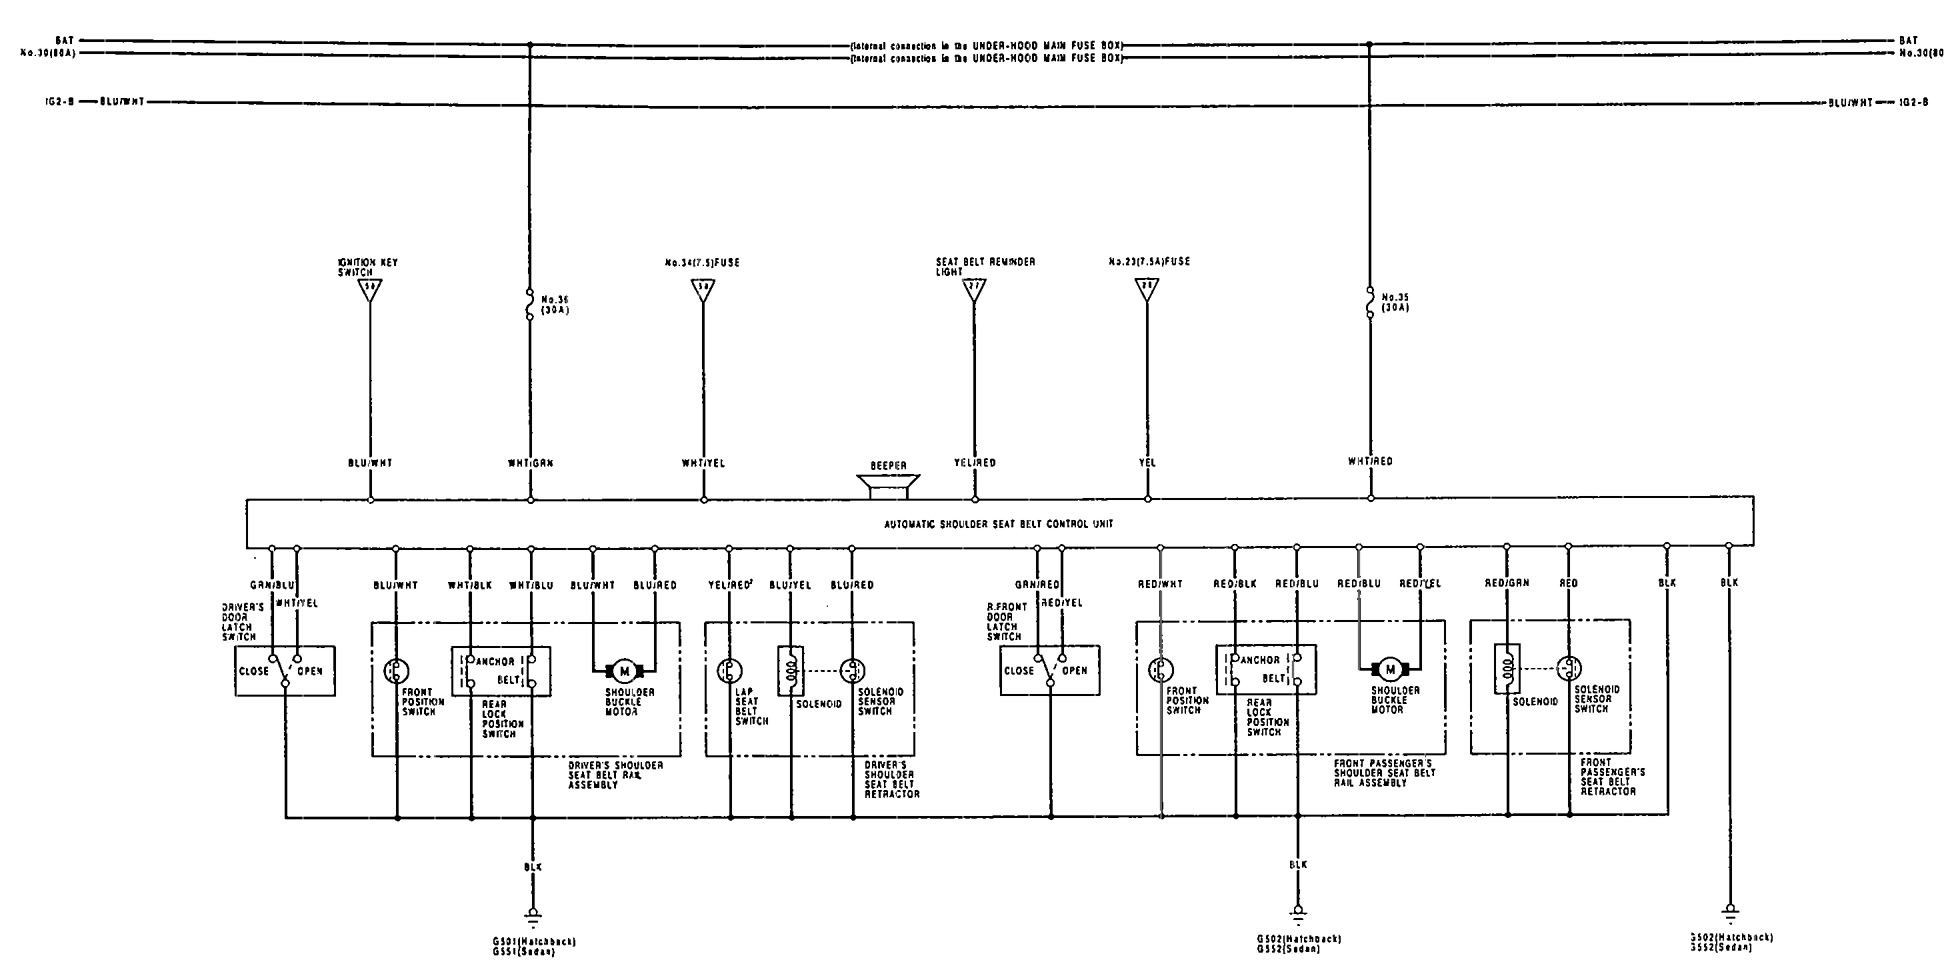 92 Acura Legend Engine Diagram Wire Data Schema Diagrams Wiring For 91 Integra 35 And Transmission 32 V6